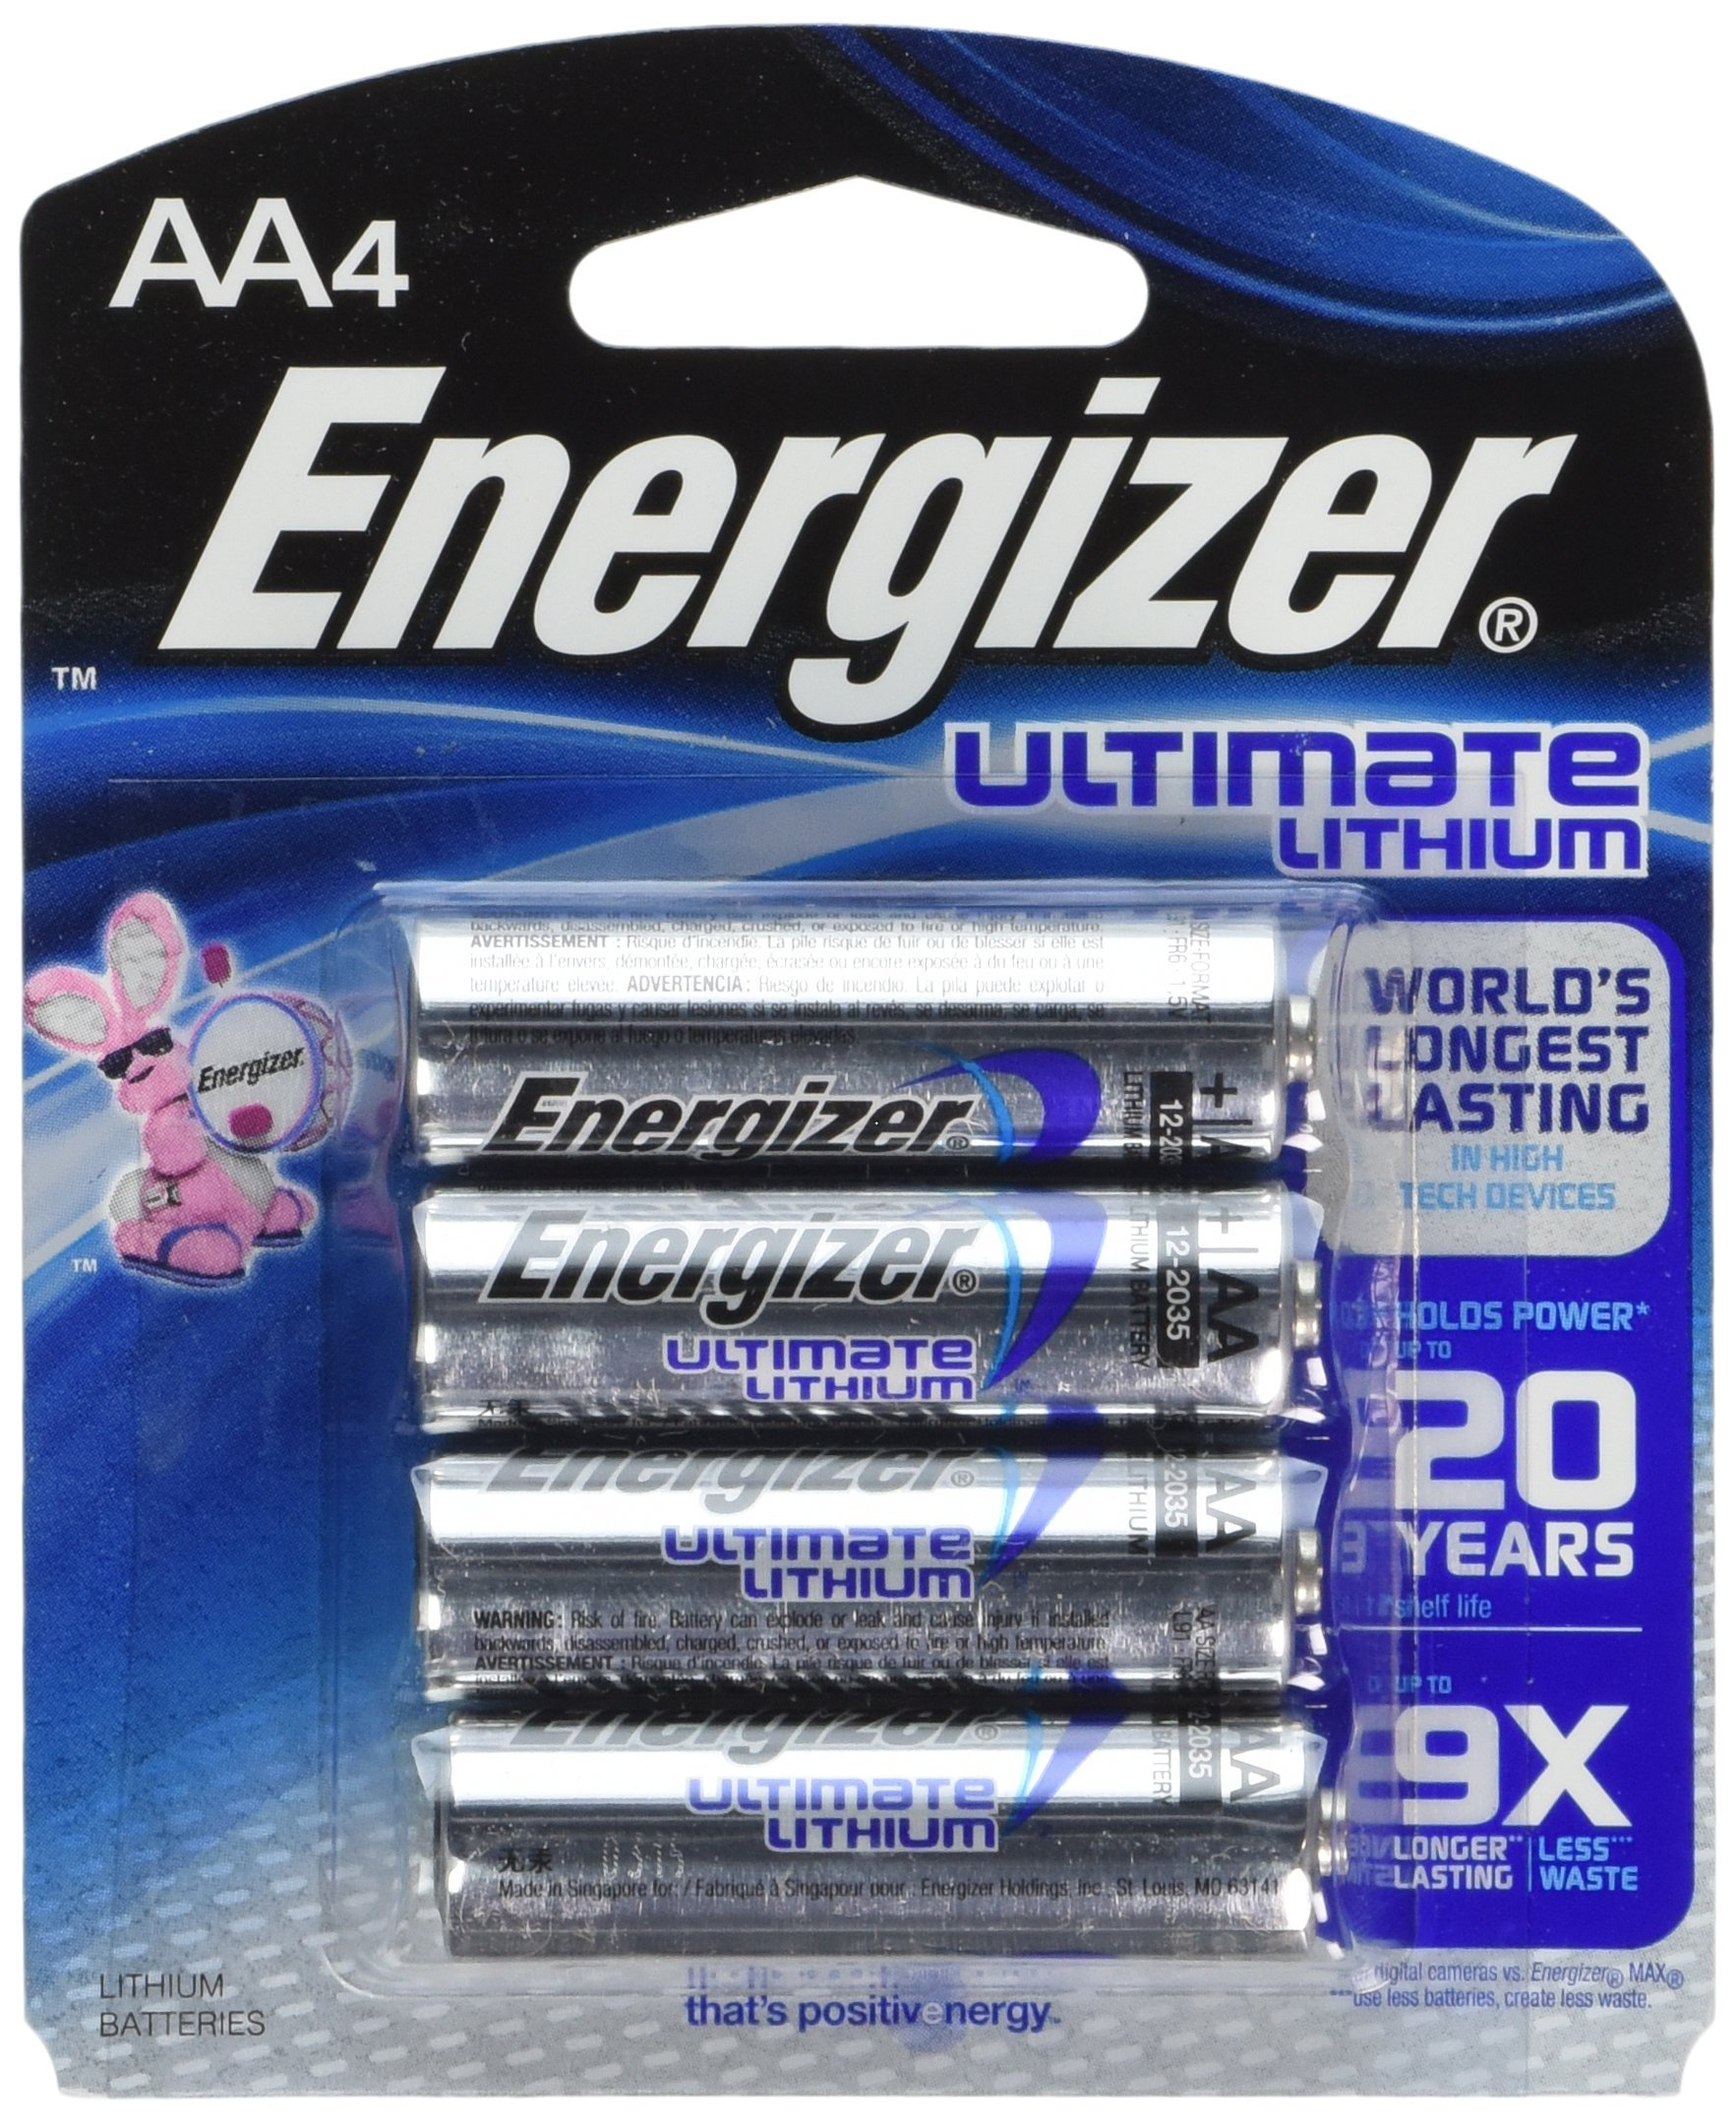 Energizer BF-W3DL-O4K4 Ultimate L91BP-4 Lithium AA Battery, 24 Batteries in Original Retail Packs Not Bulk by Energizer